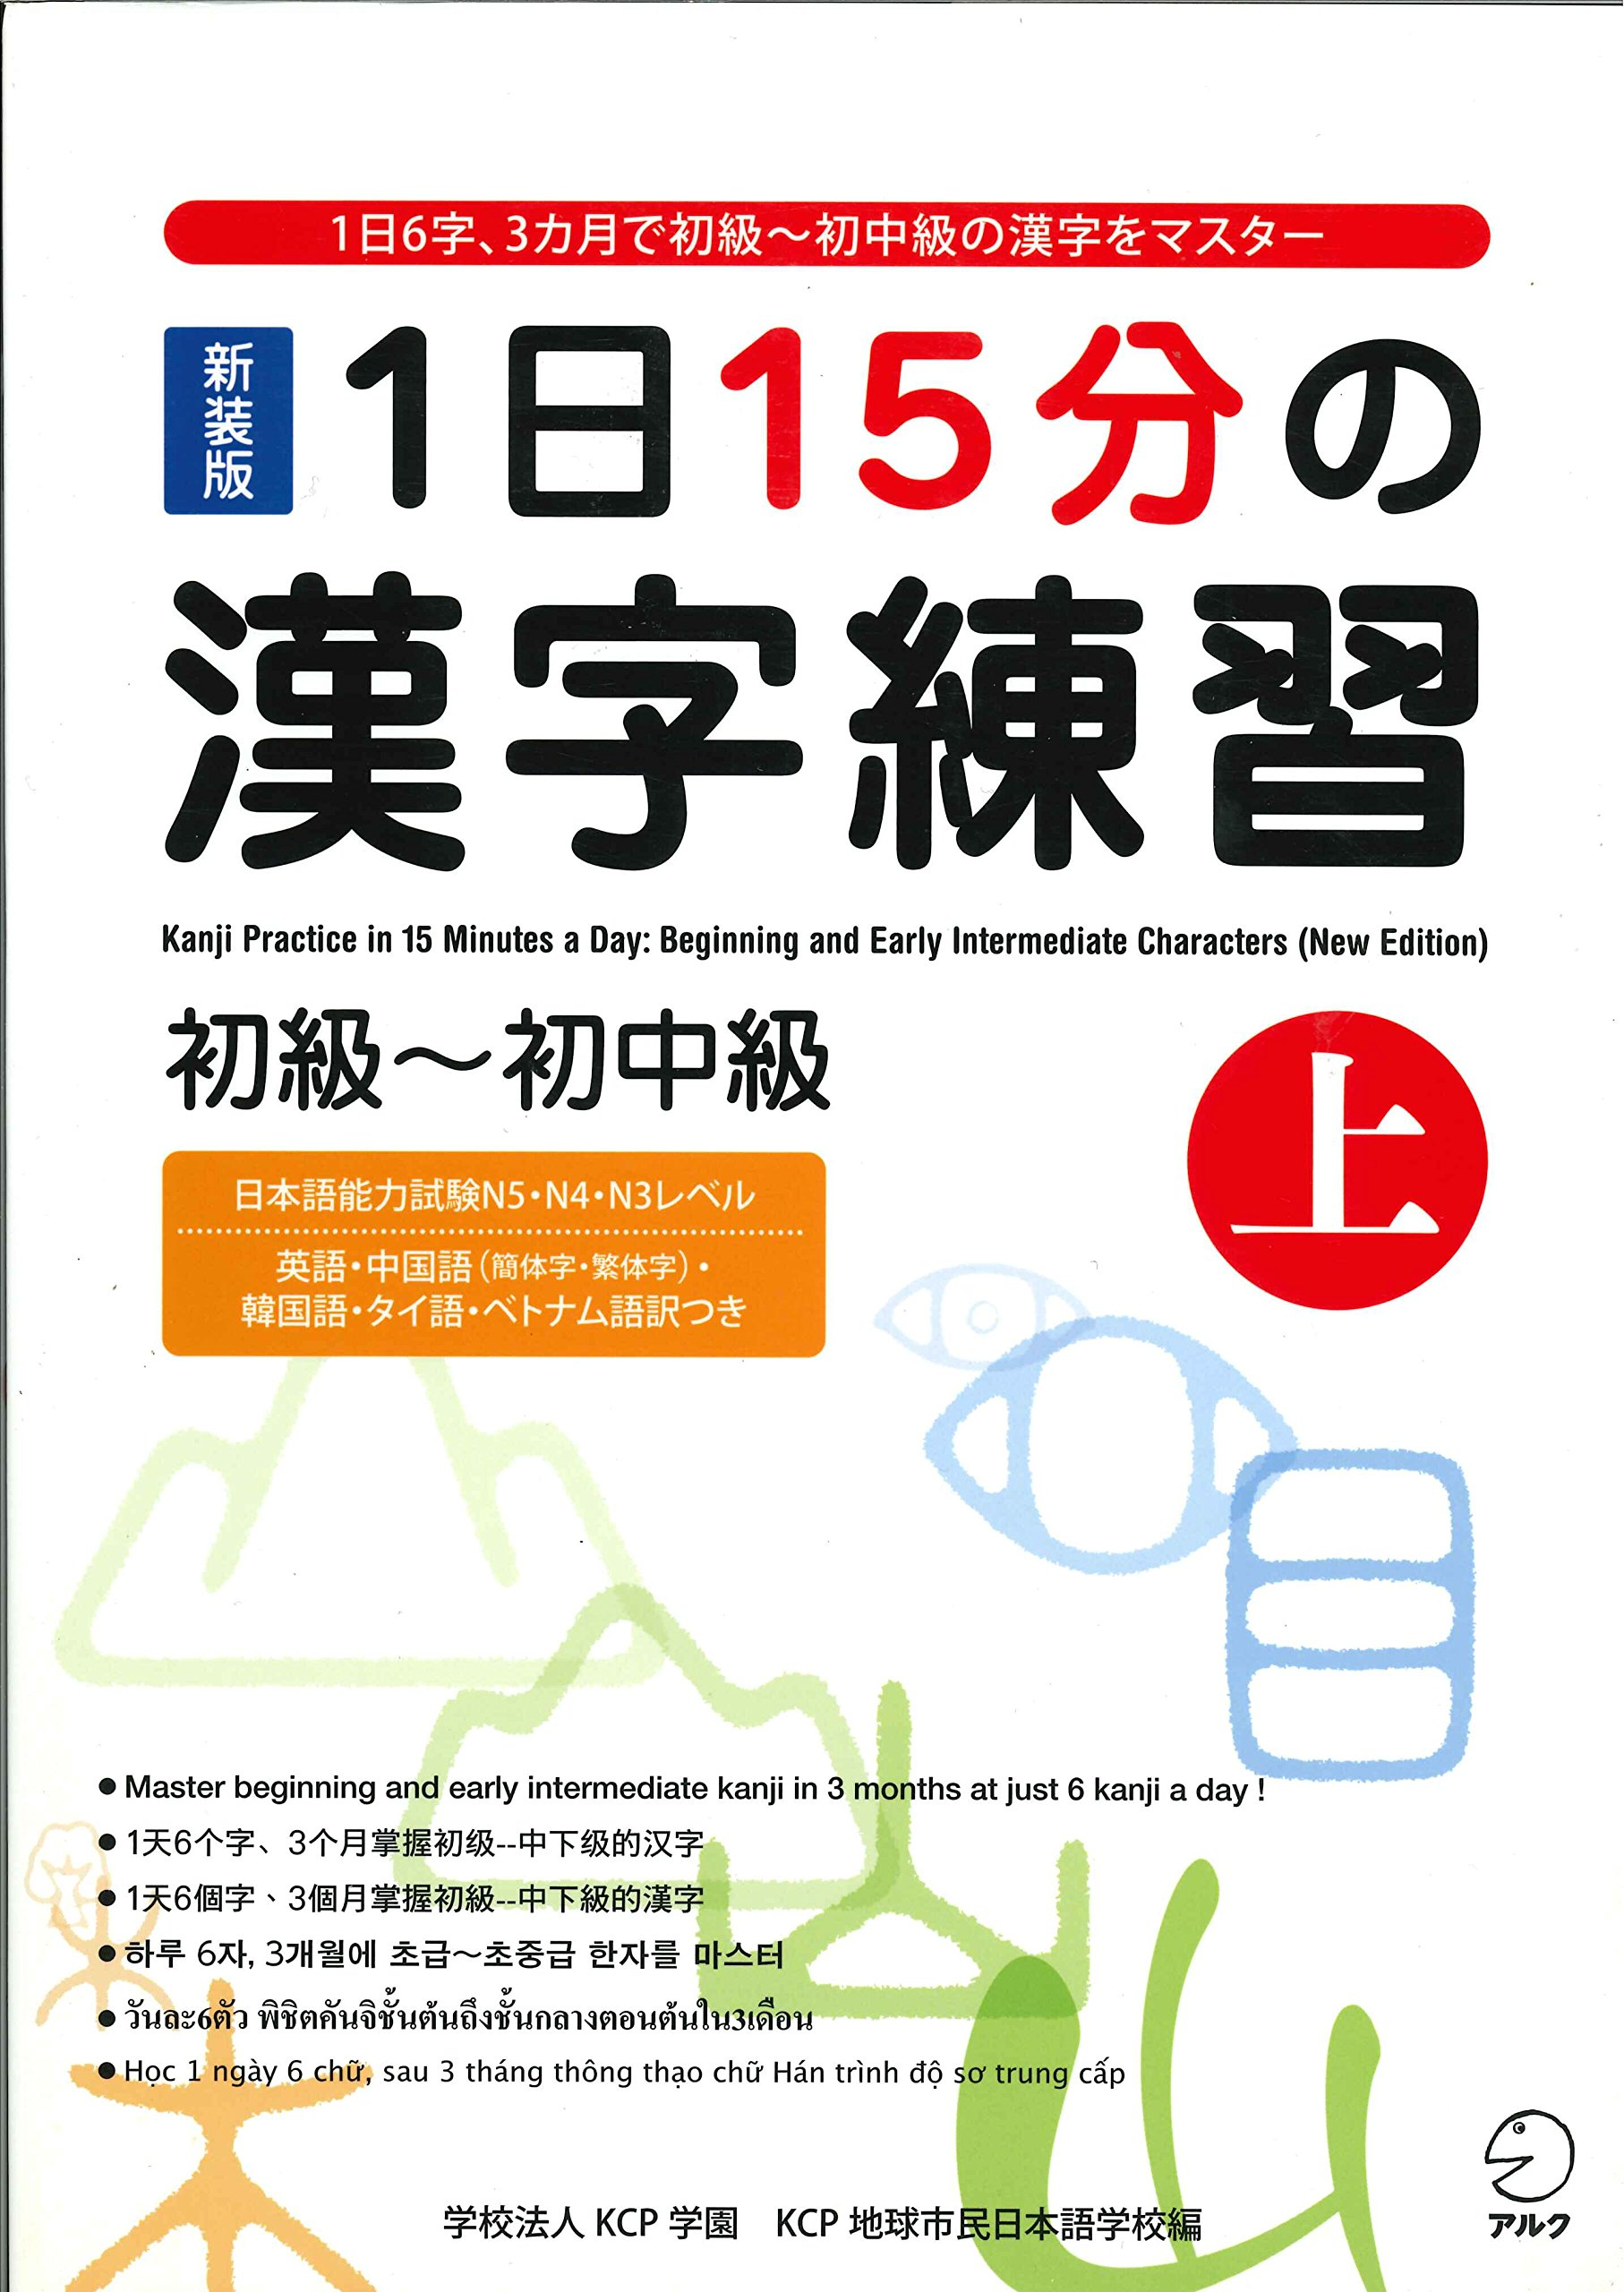 Kanji Practice in 15 Minutes a Day vol. 1 : Beginning and Early Intermediate Characters [New Edition] - Japanese Writing Study Book pdf